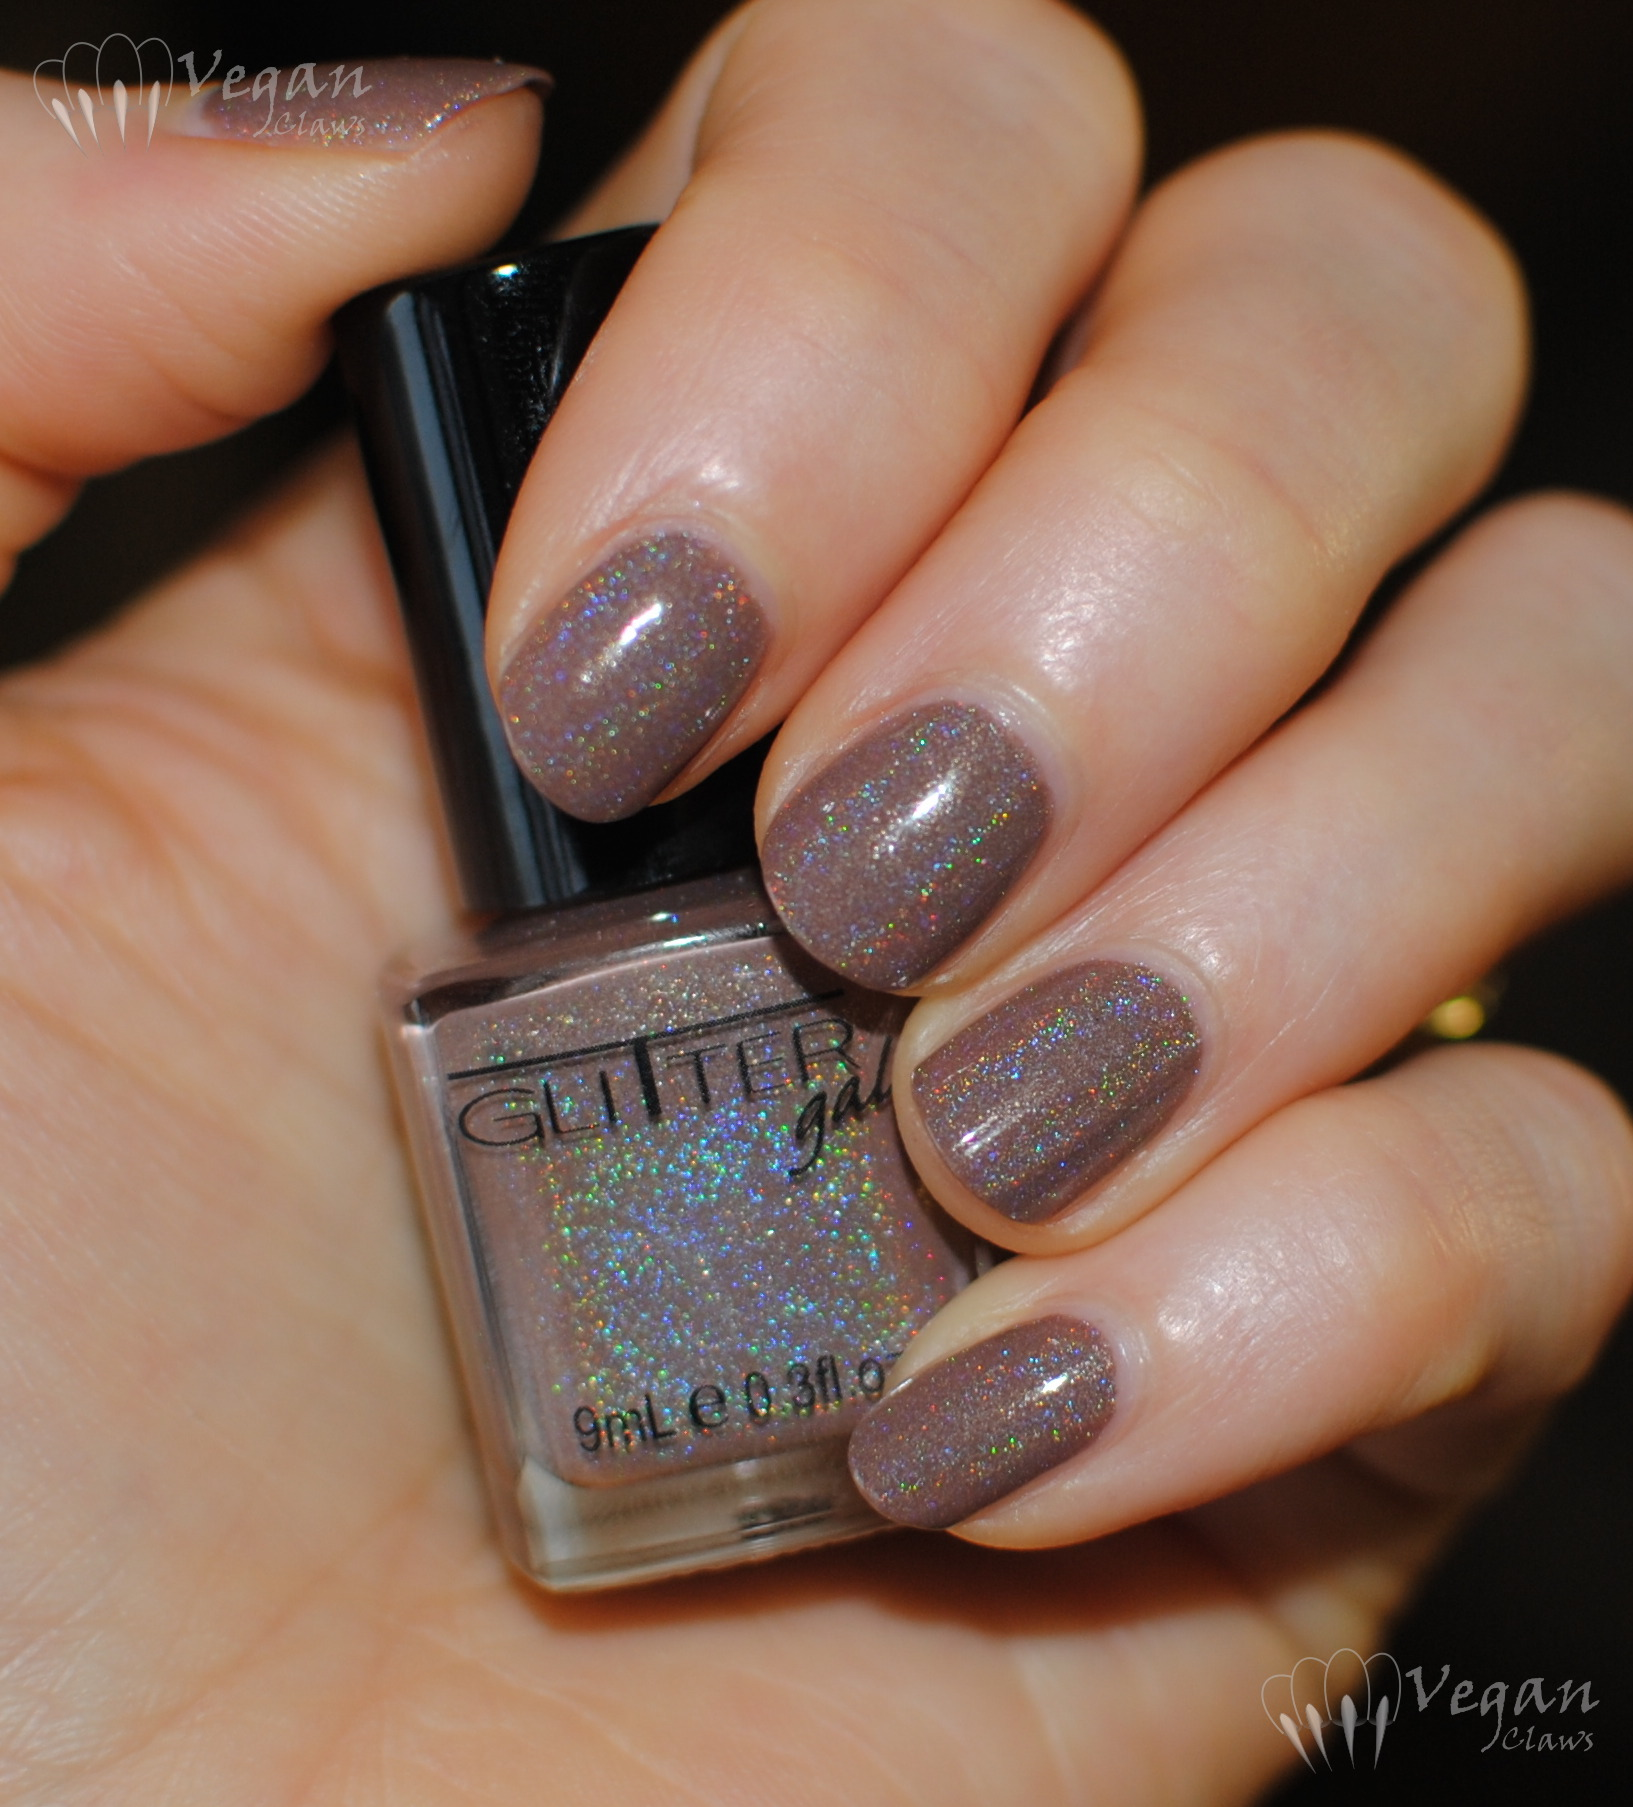 Glitter Gal Suede and stamped accents | Vegan Claws